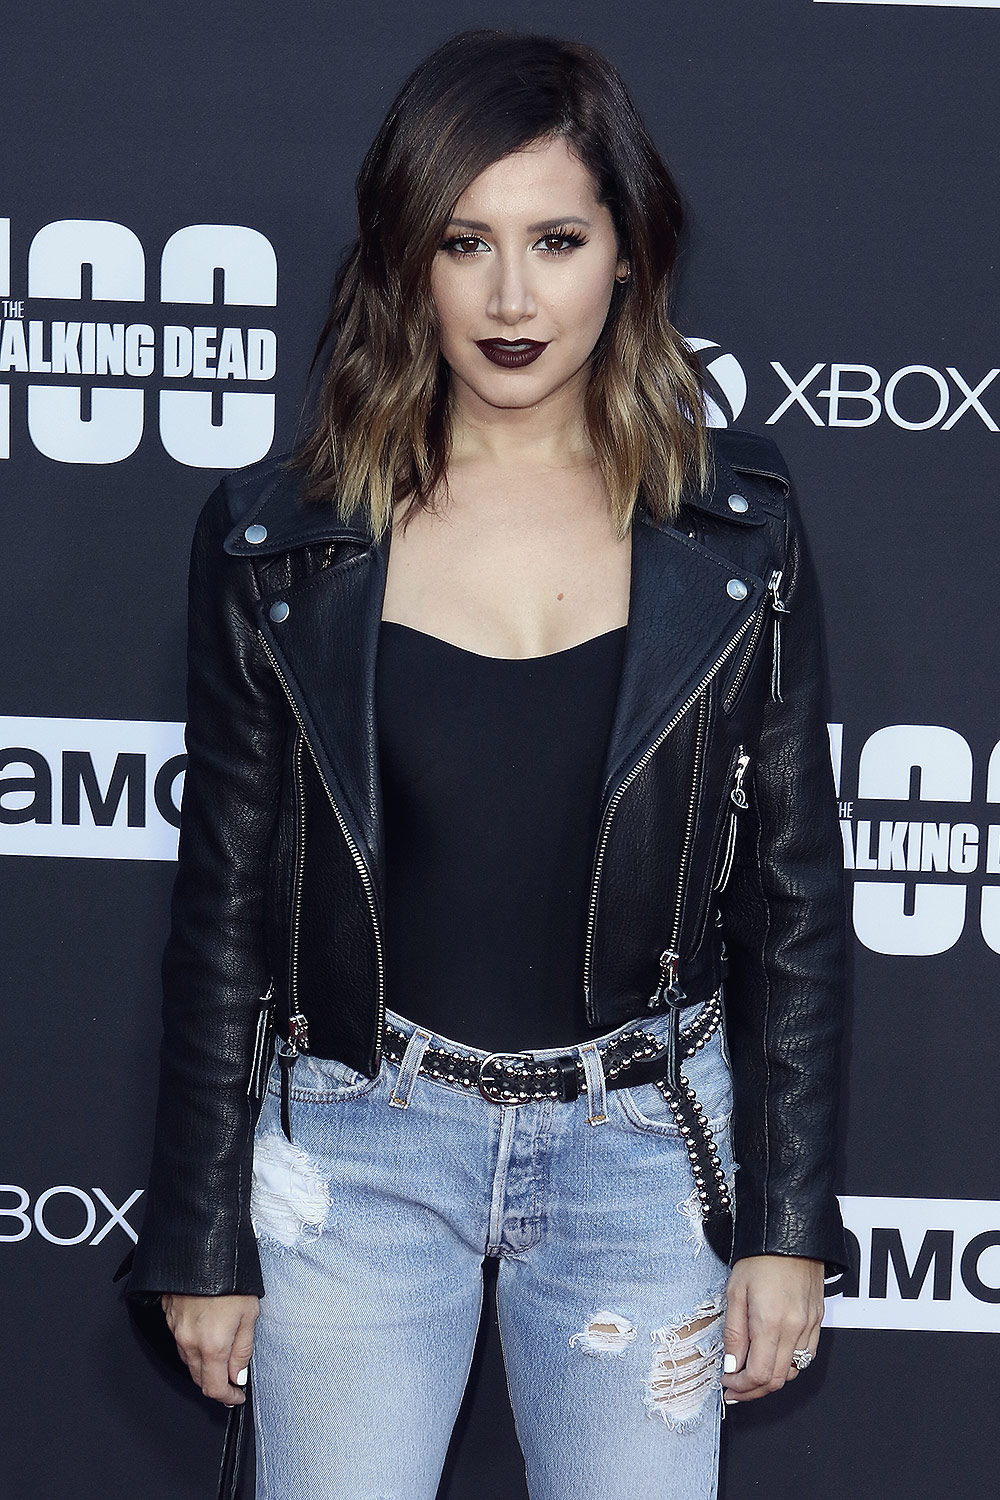 Ashley Tisdale attends The Walking Dead Season Premiere Event